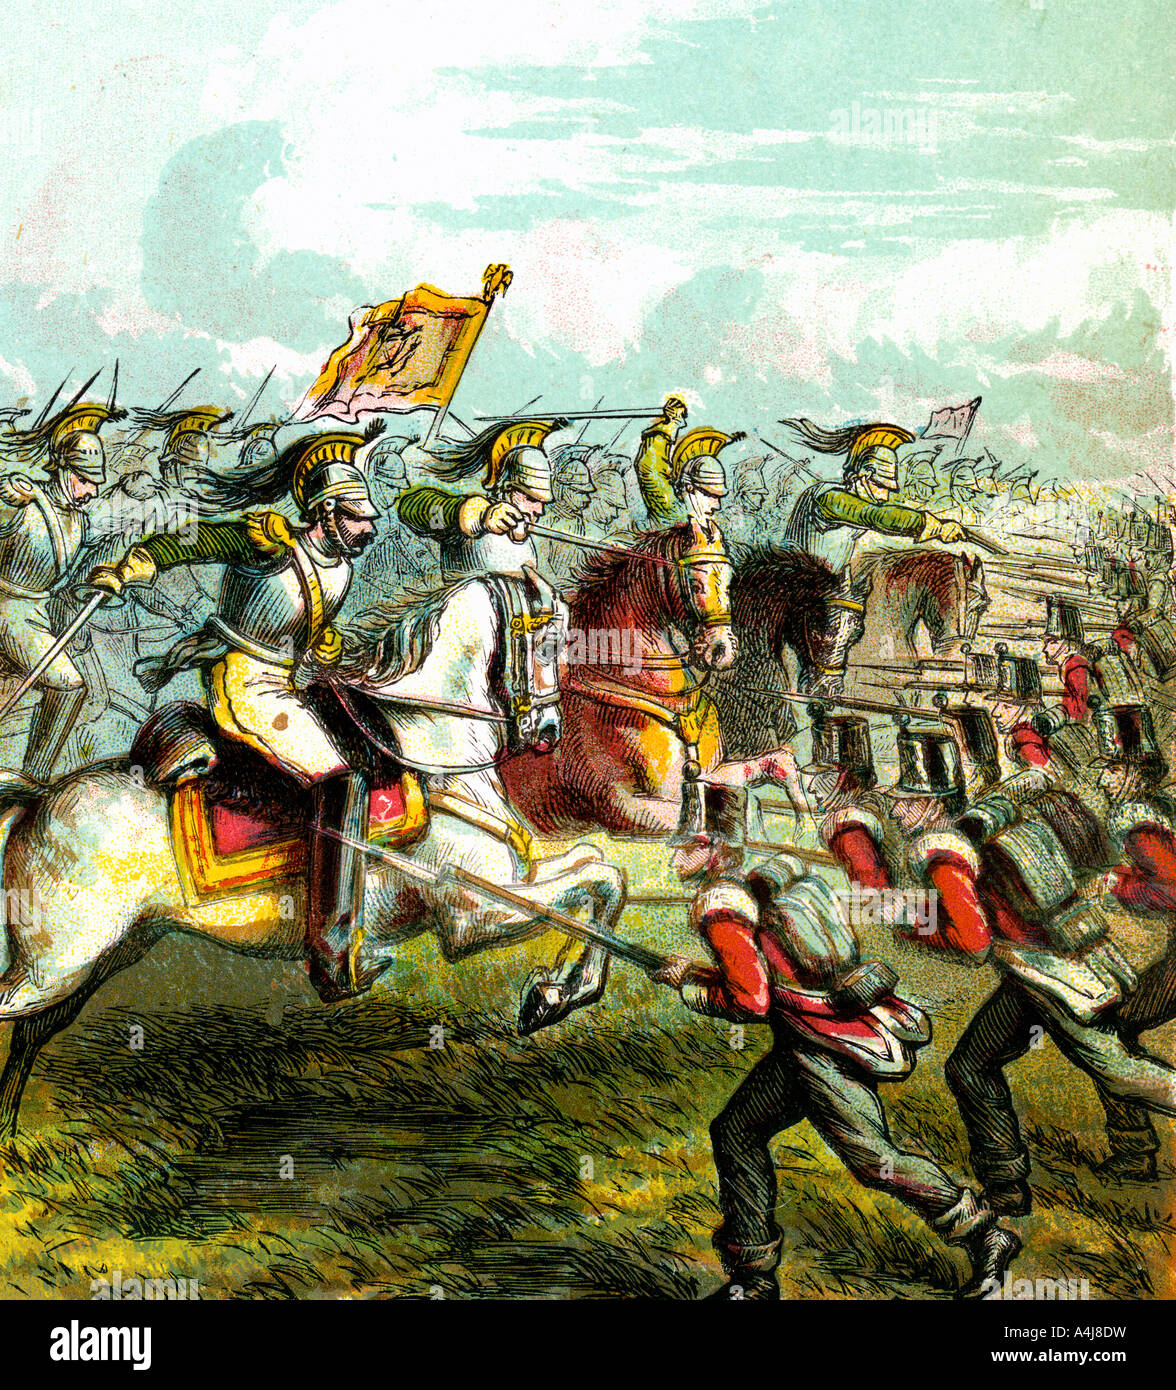 'The Battle of Waterloo, 1815', (c1850s). Artist: Unknown - Stock Image